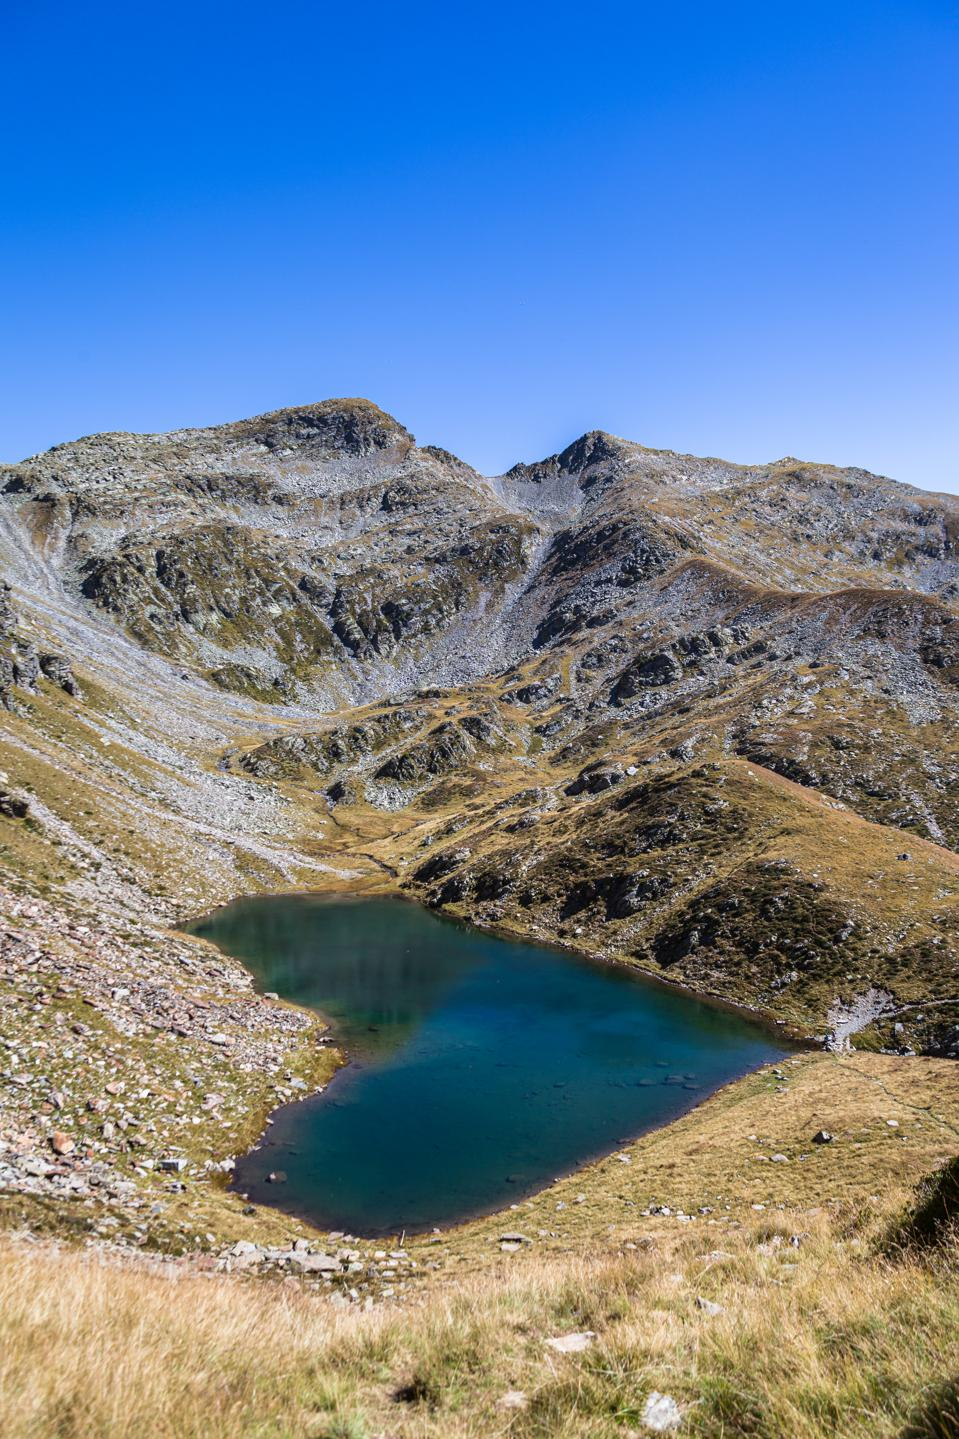 Stunning ariel view of the Lagh de Calvaresc lake with heart shape, in Swiss Alps,